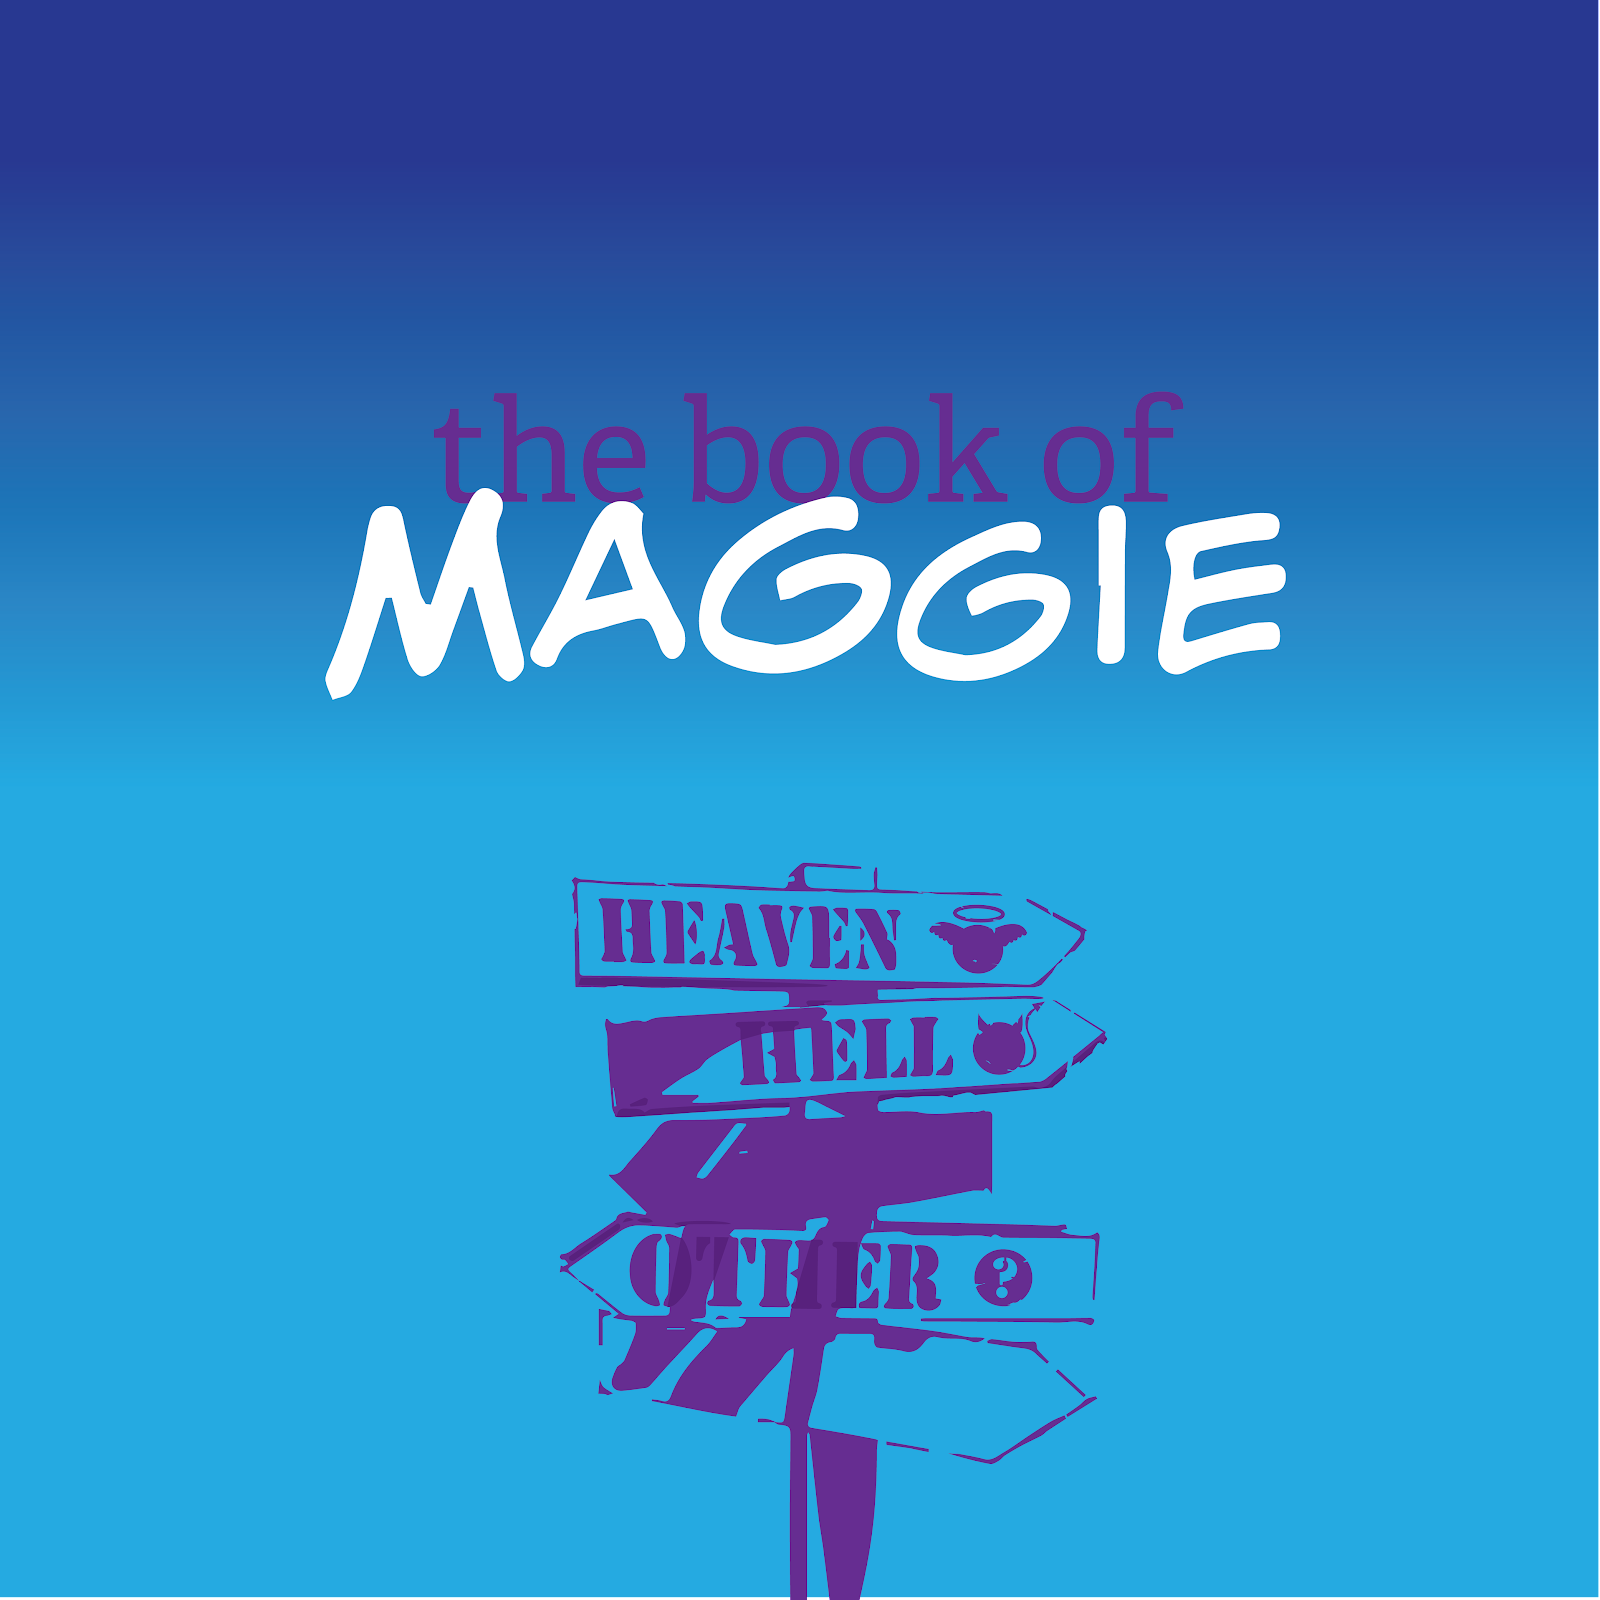 BWW Interview: Playwright Brendan Bourque-Sheil Talks BOOK OF MAGGIE, Set to Premiere at Stages Rep